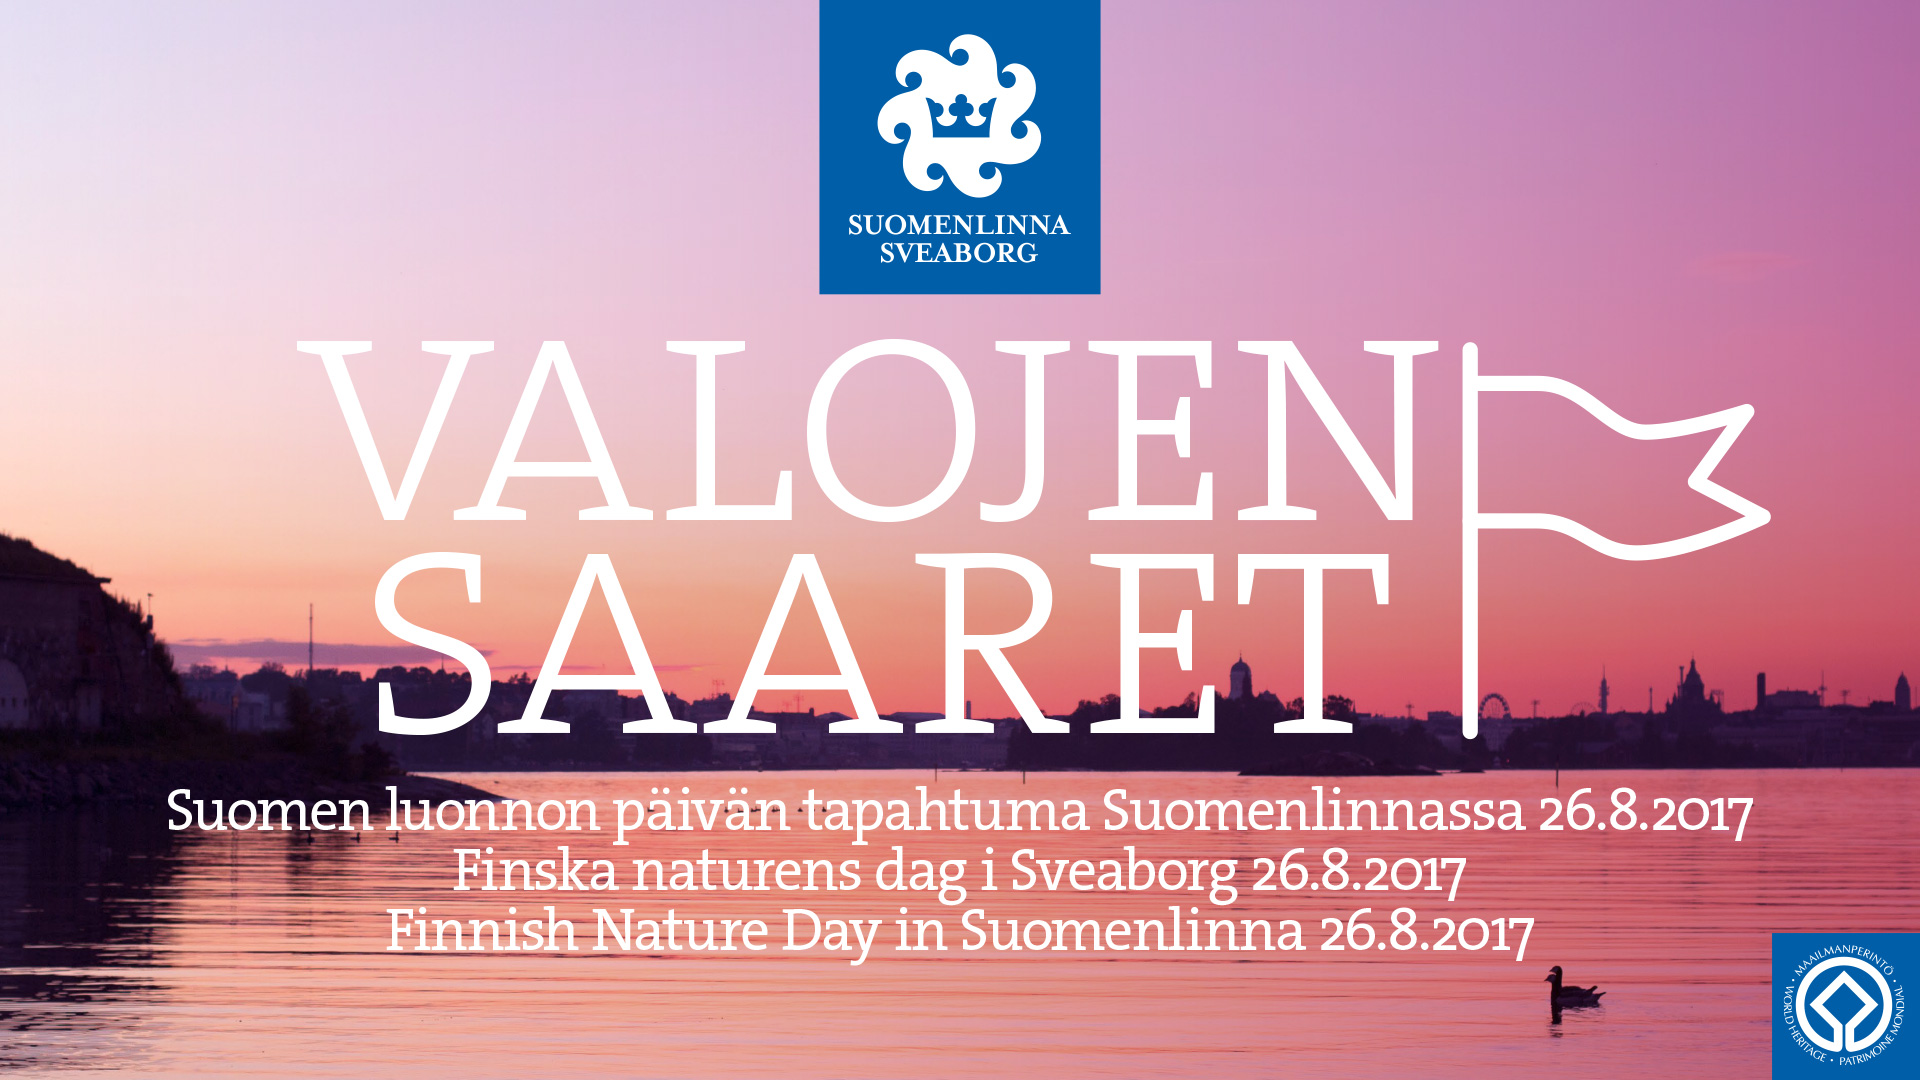 Islands Of Lights Celebration On The Finnish Nature Day